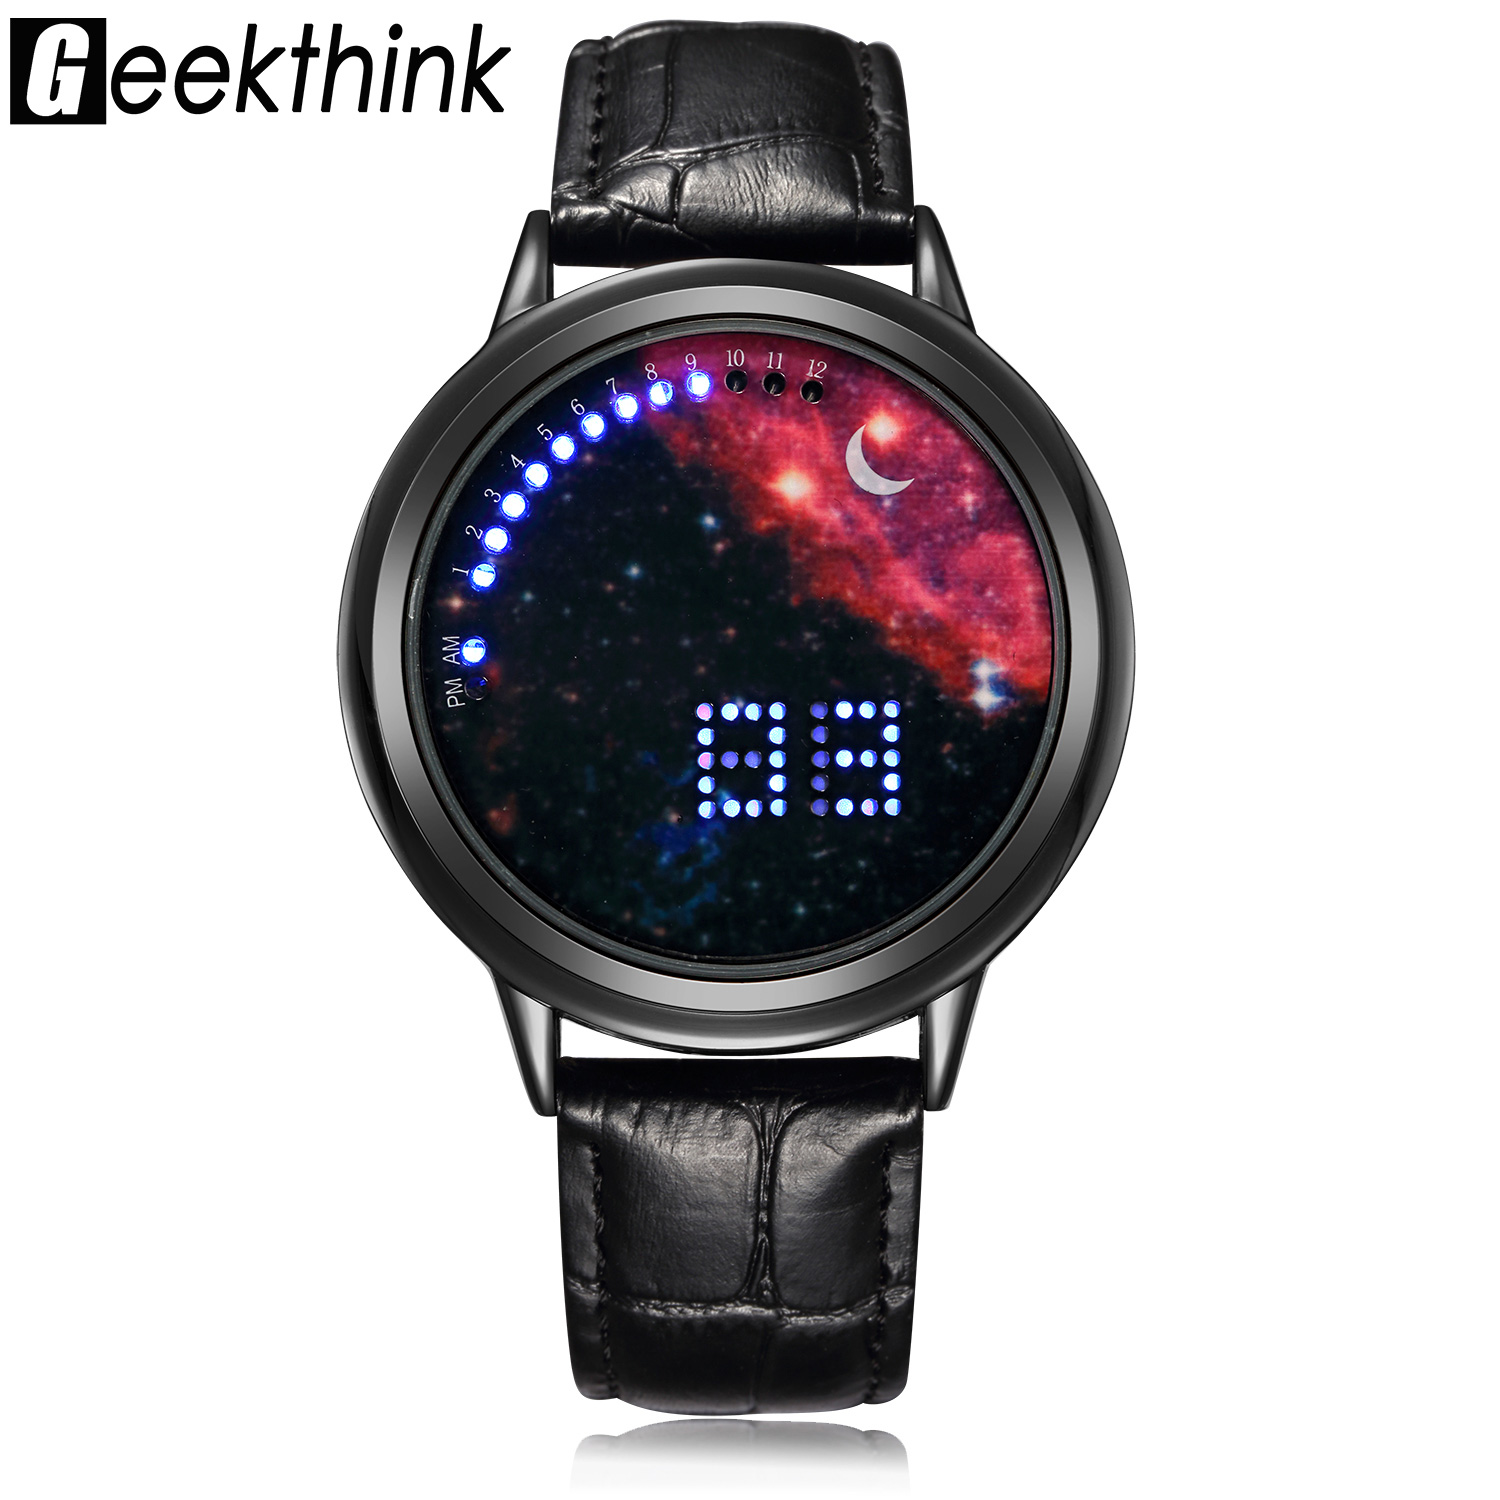 GEEKTHINK Fashion Casual Luxury brand Digital Led Watch Women Unisex Wristwatch Casual Luxury Male Clock Creative giftGEEKTHINK Fashion Casual Luxury brand Digital Led Watch Women Unisex Wristwatch Casual Luxury Male Clock Creative gift